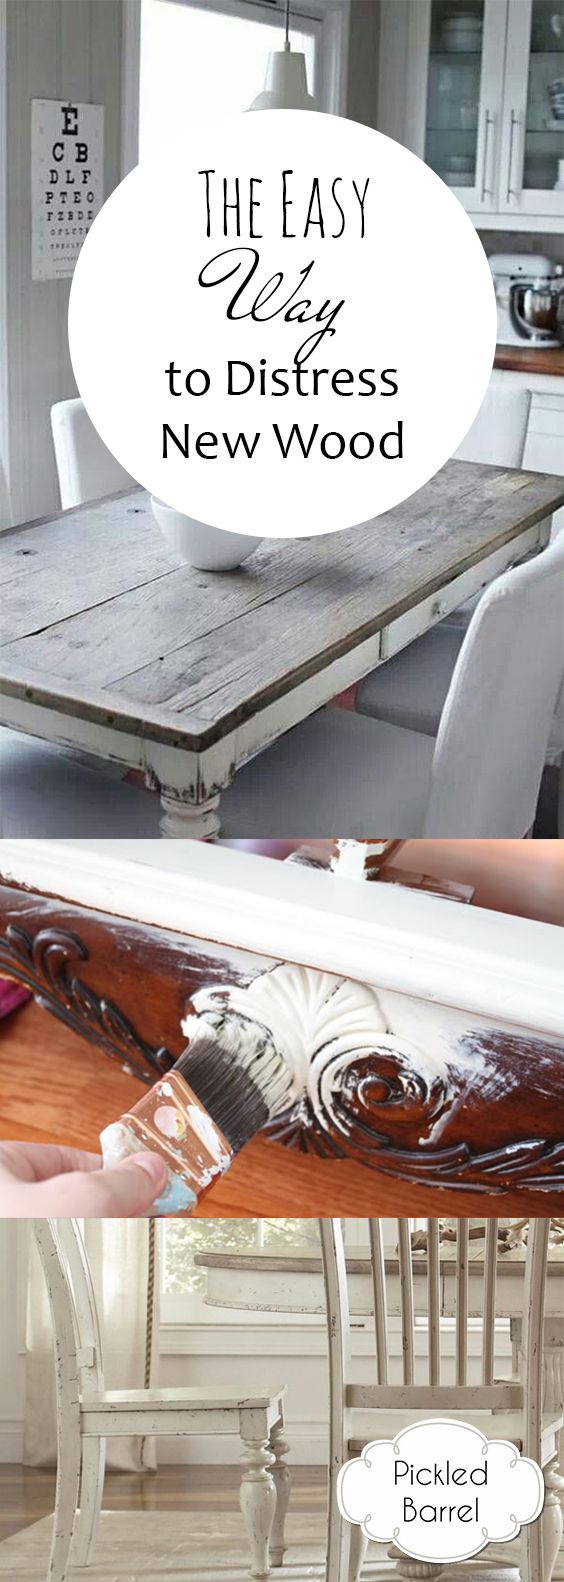 How to distress wood easy ways to distress wood wood distressing diy wood